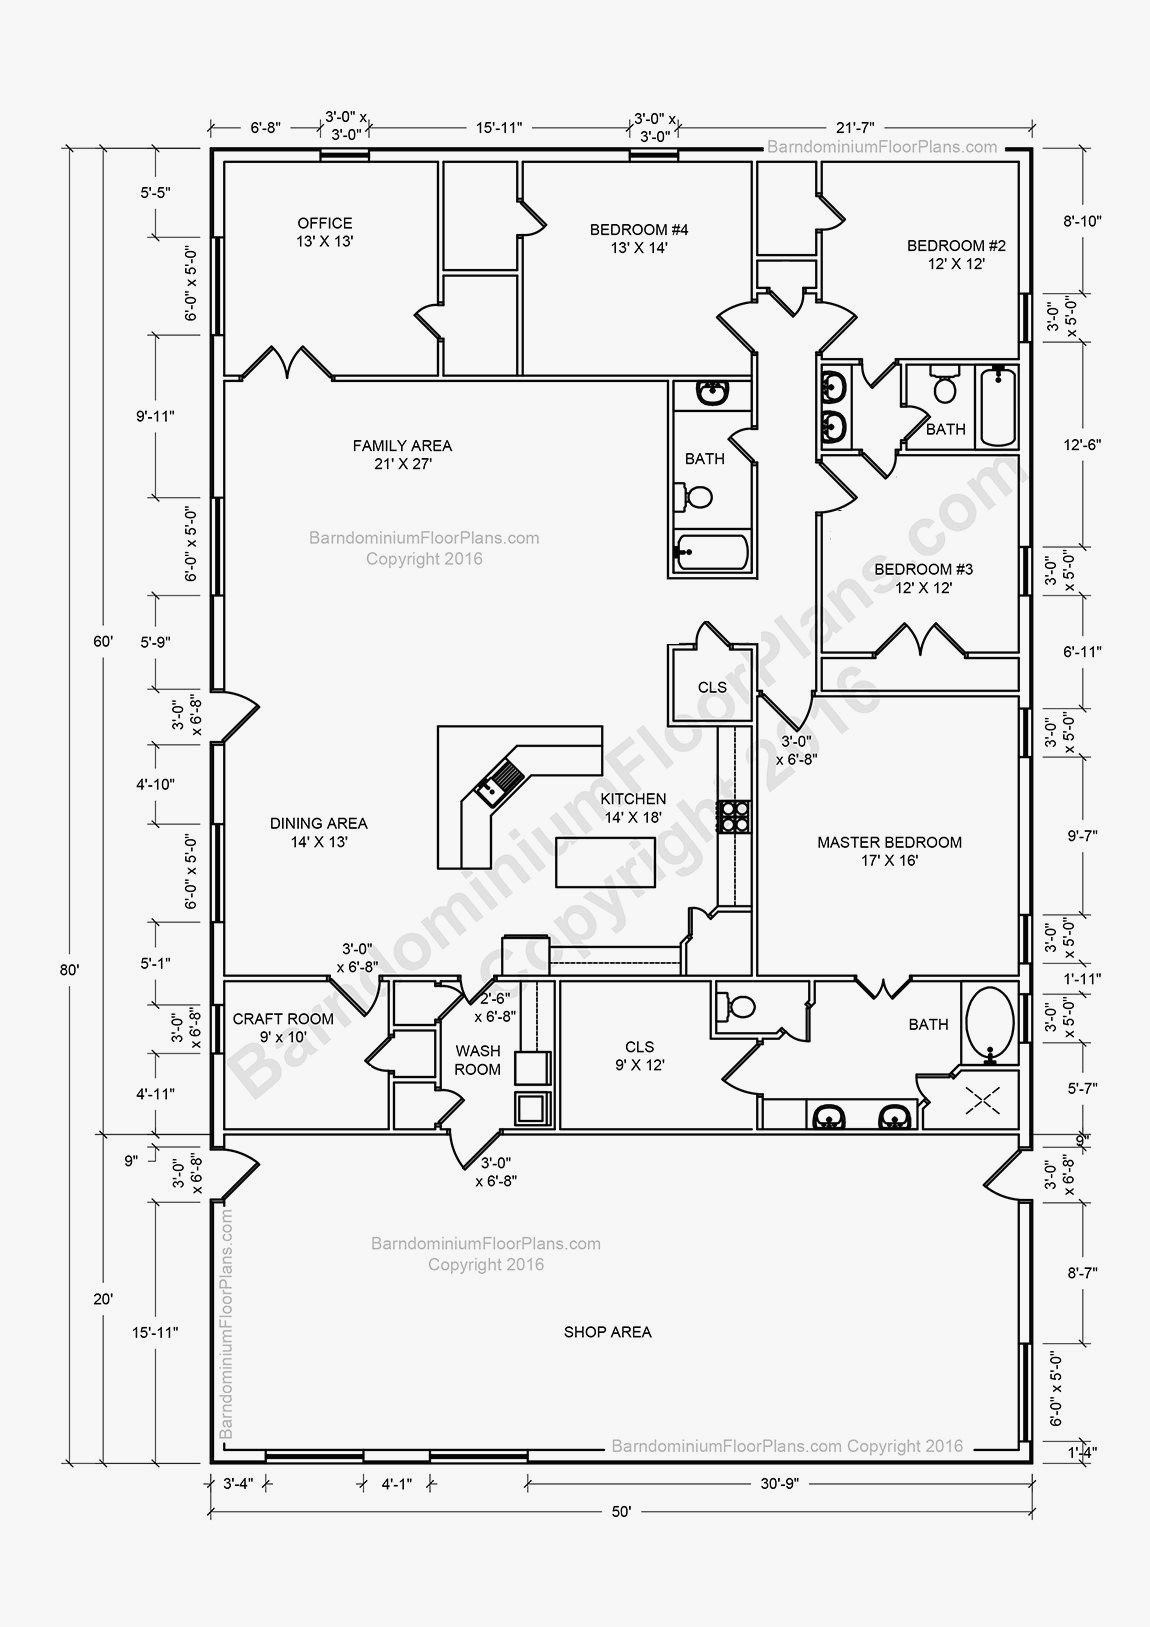 metal barn house floor plans elegant barndominium floor plans pole barn house plans and metal barn homes of metal barn house floor plans